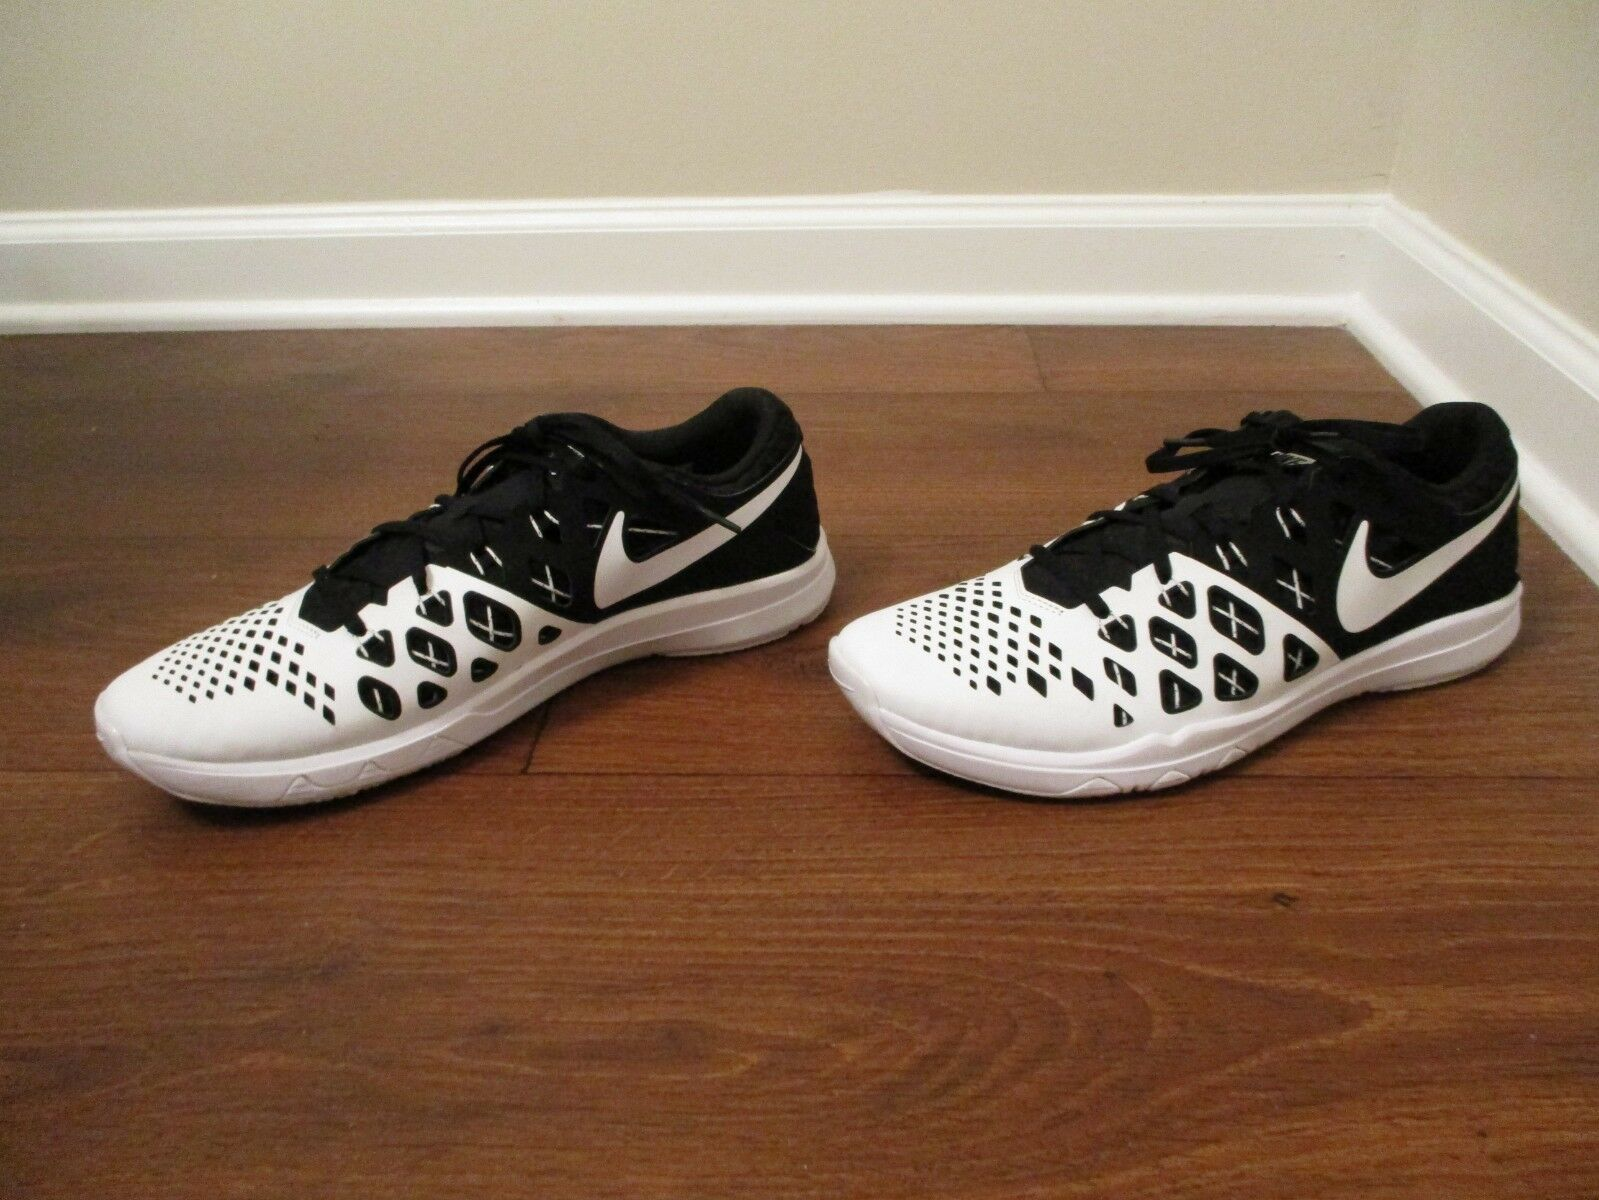 Used Worn Size 12 Nike Train Speed 4 TB shoes Black & White